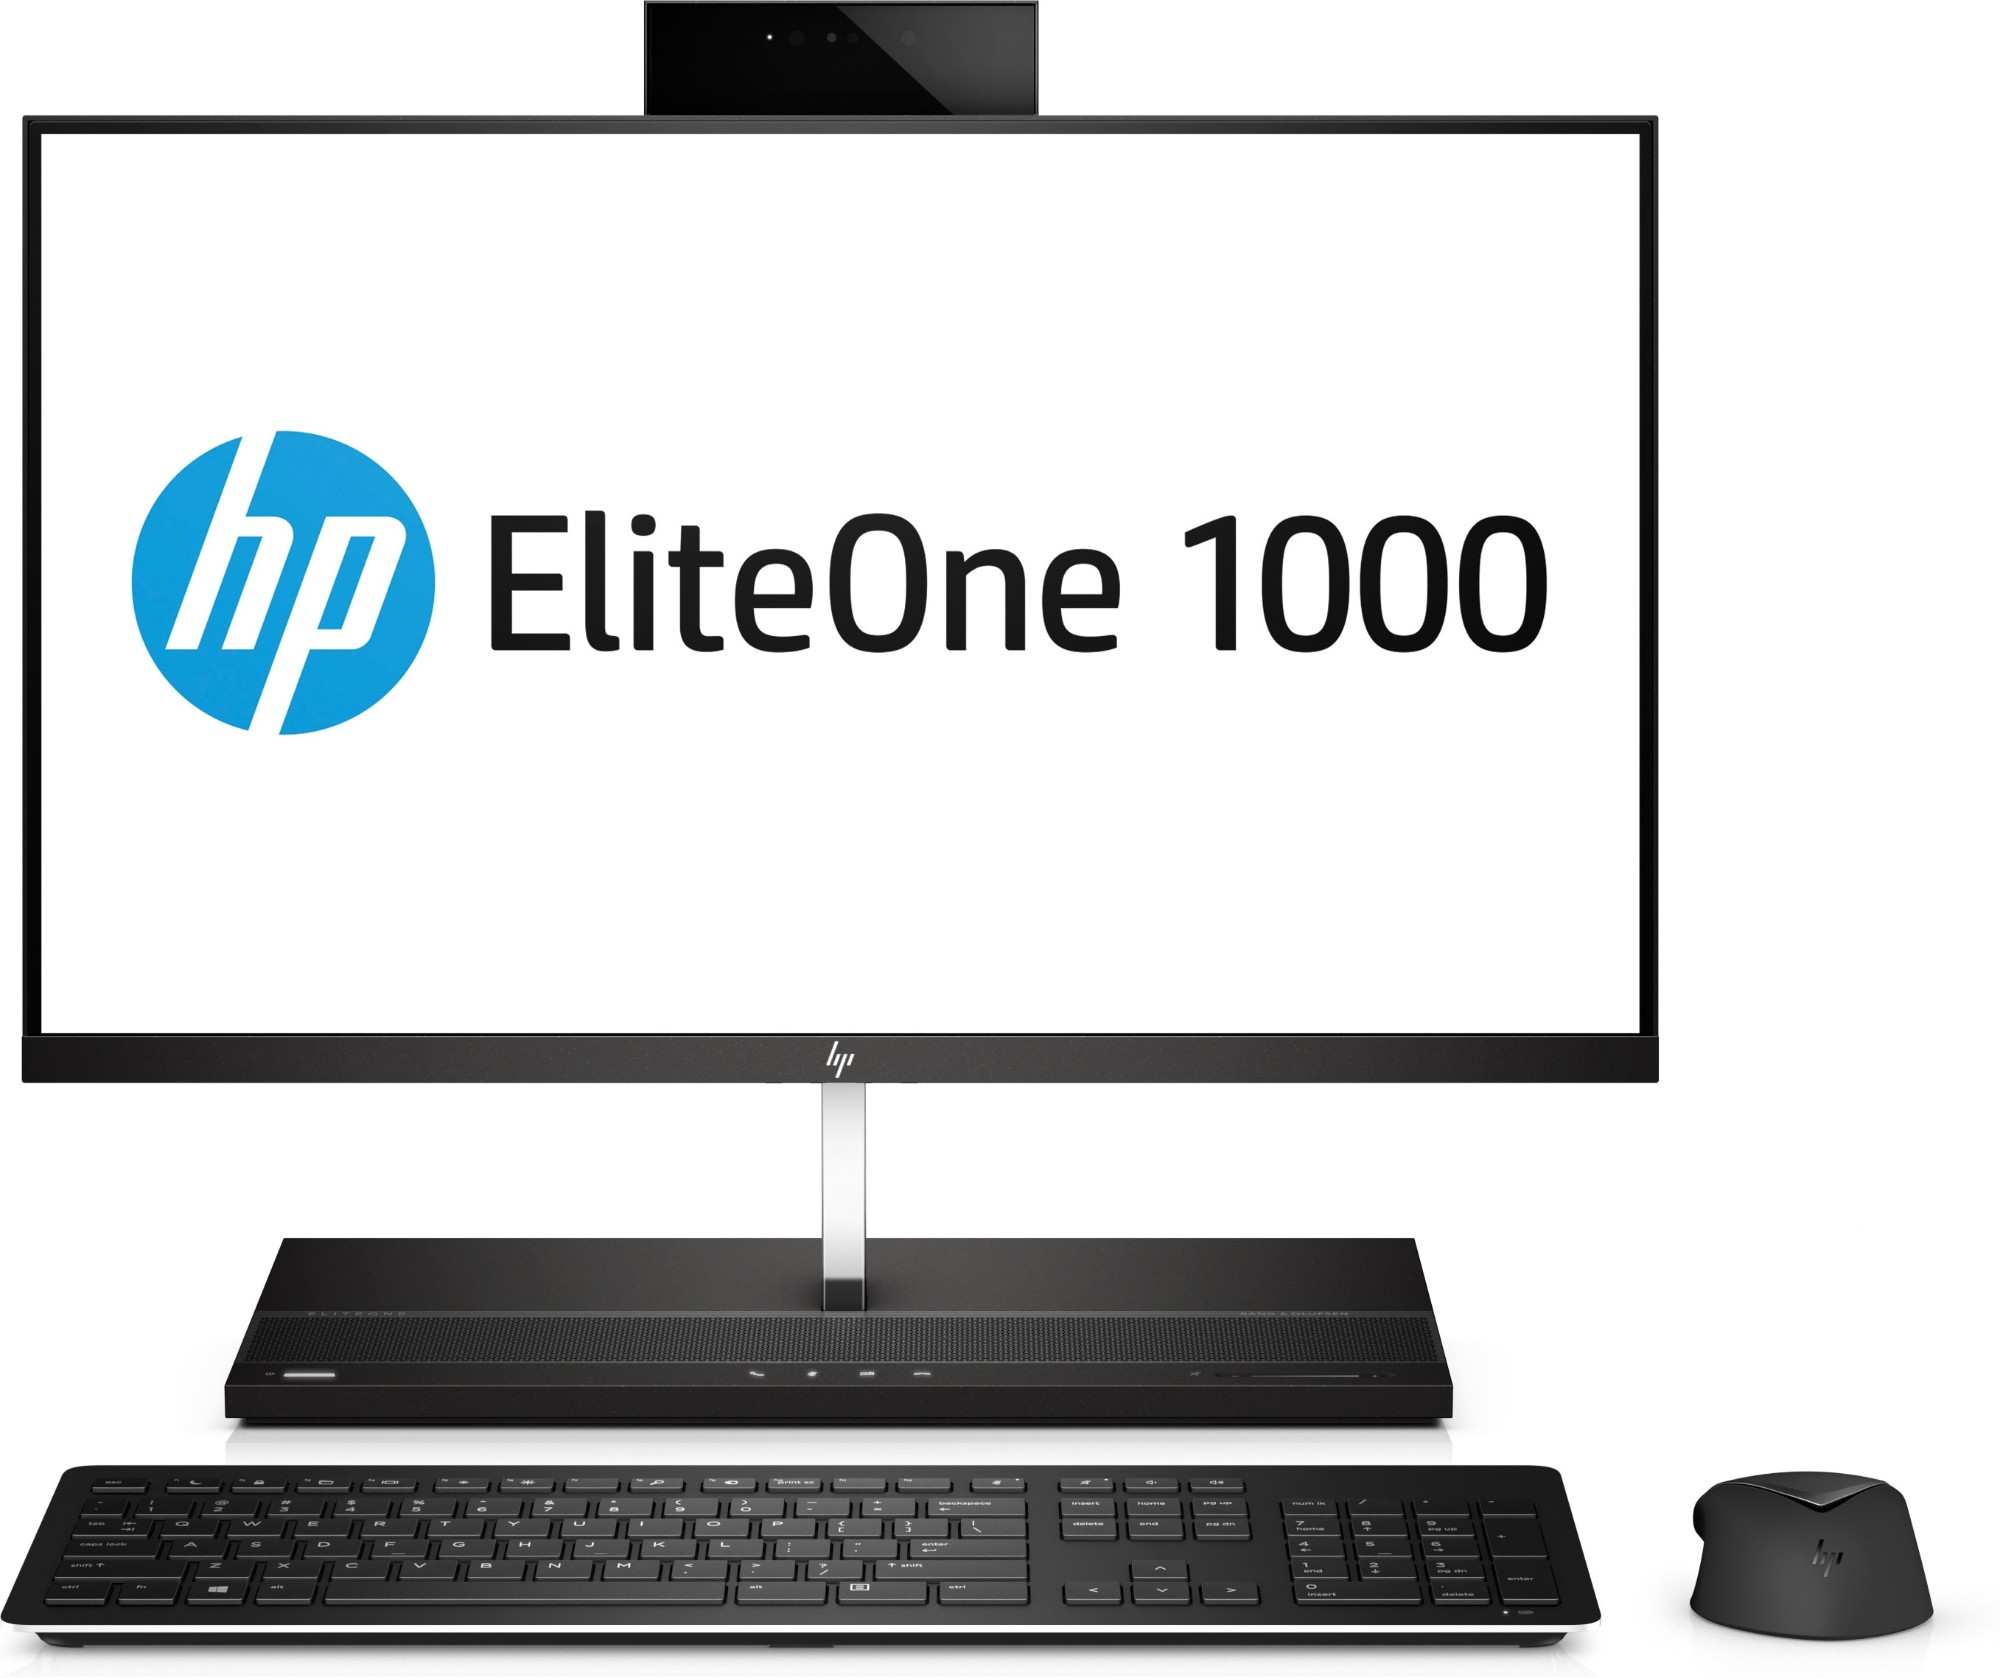 HP EliteOne 1000 G1 23.8-in Touch All-in-One Business PC 2UQ57EA#ABU